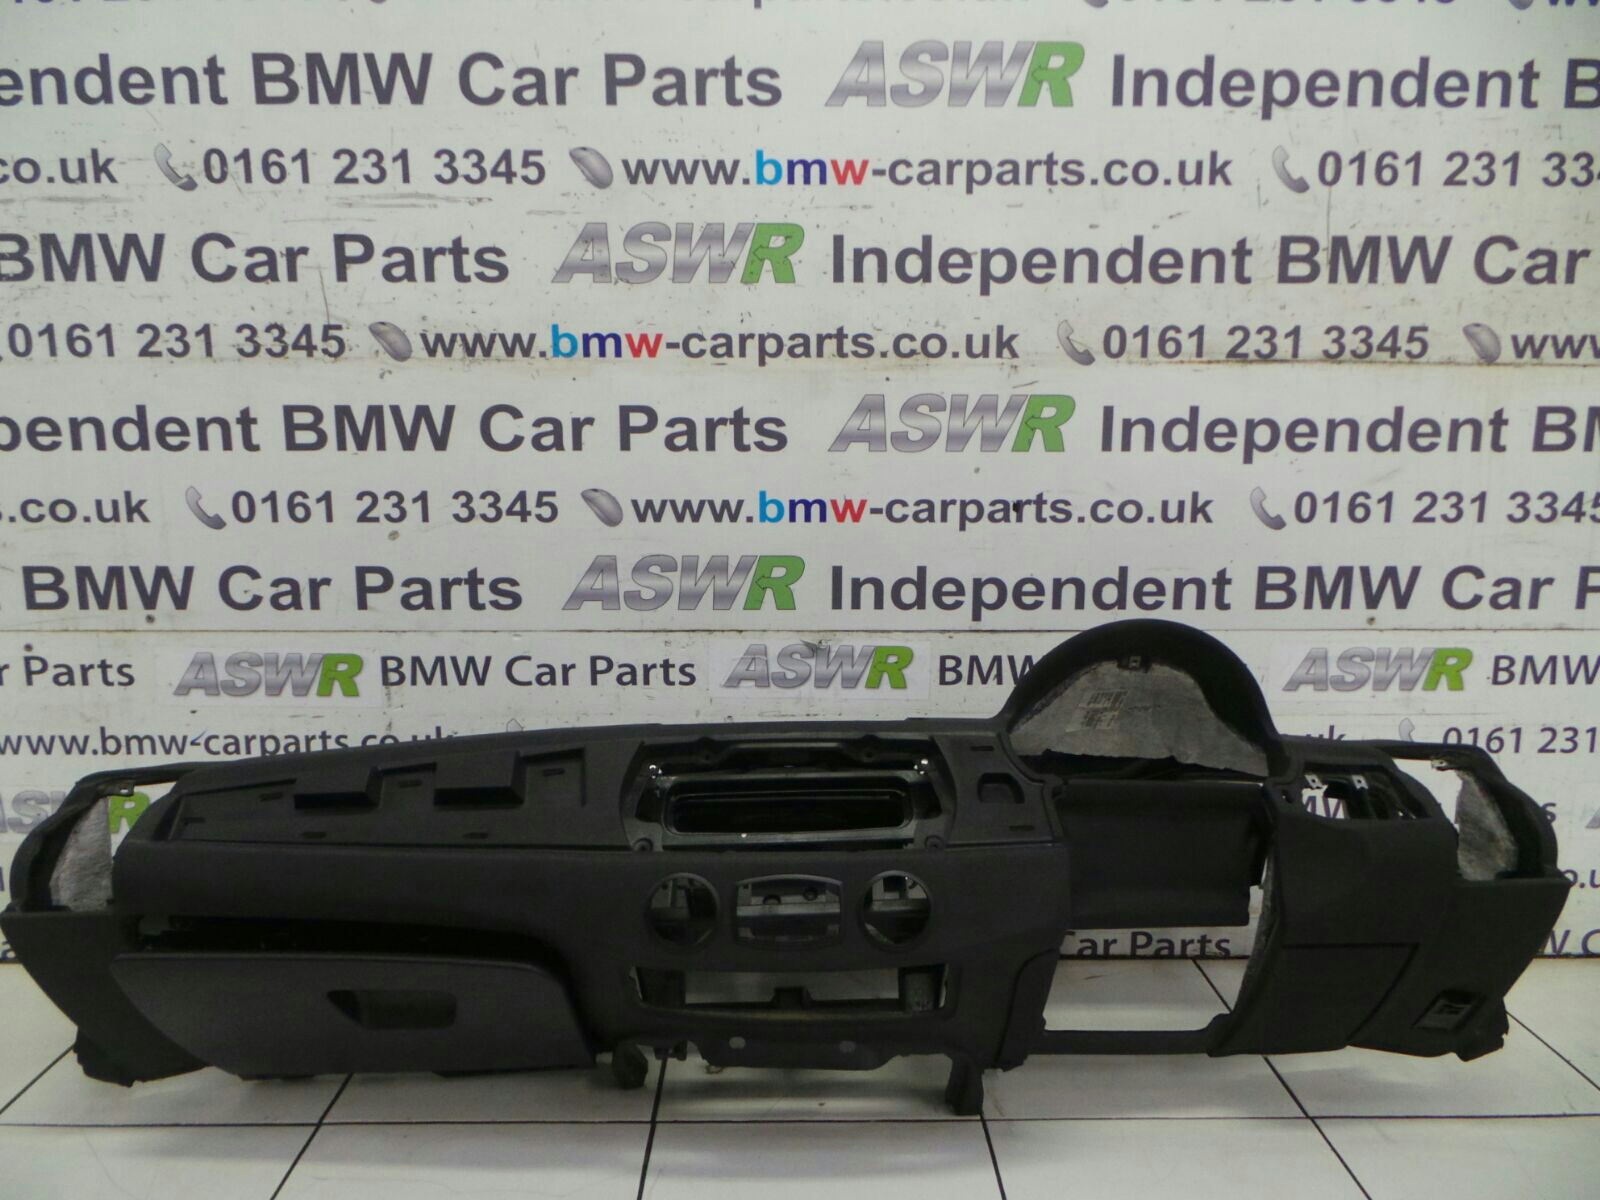 Used Bmw Car Parts Manchester